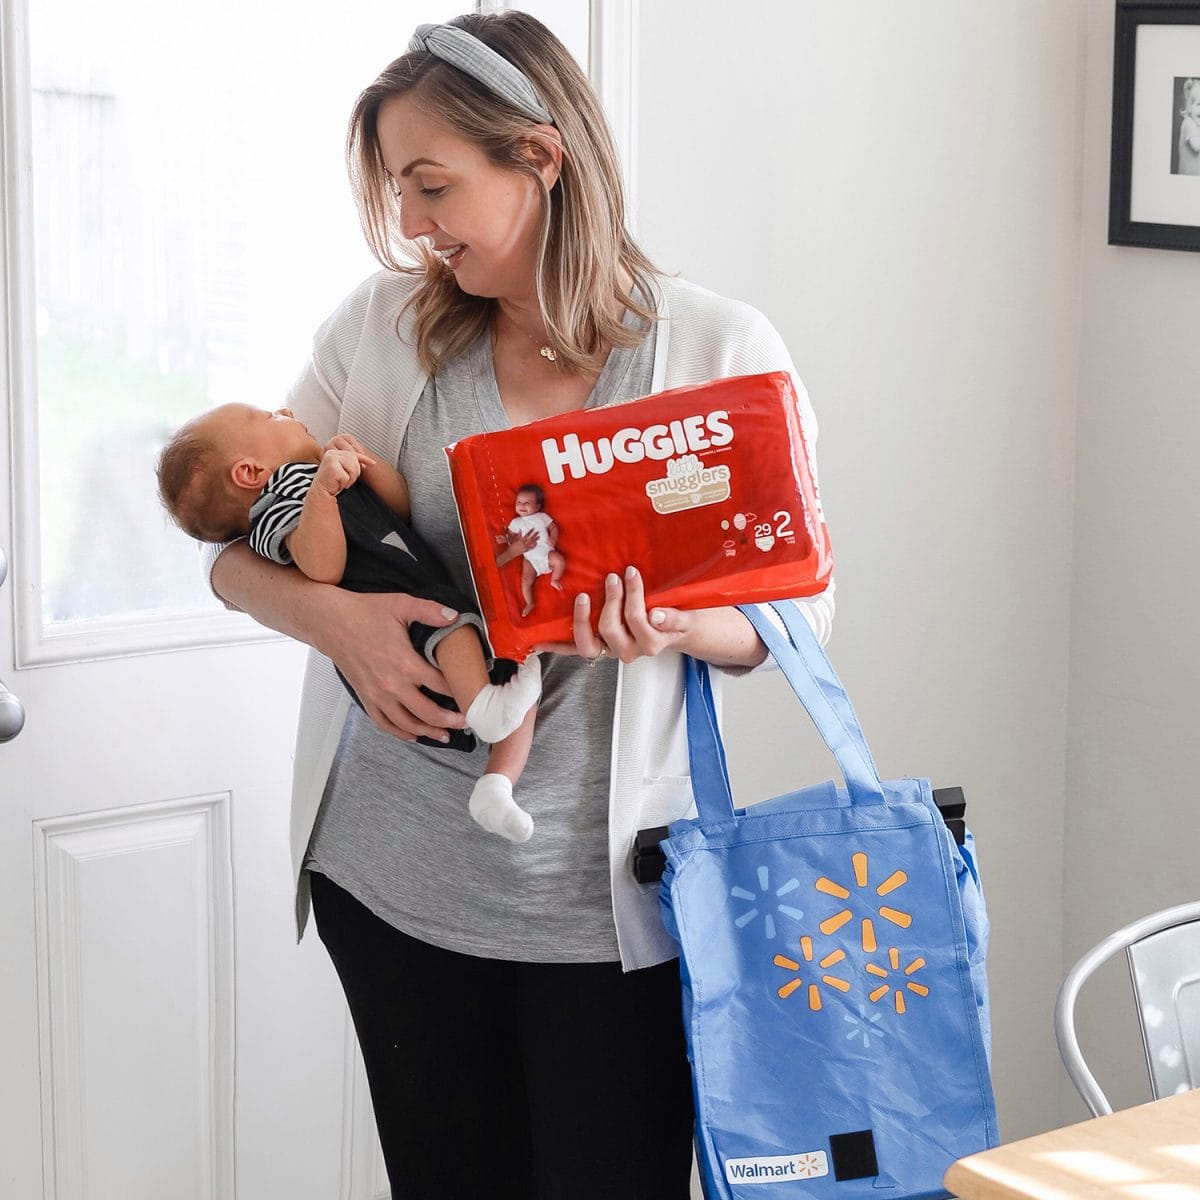 Huggies and Walmart have teamed up with the National Diaper Bank Network to donate and distribute more than 220 million diapers and support families struggling with diaper need.